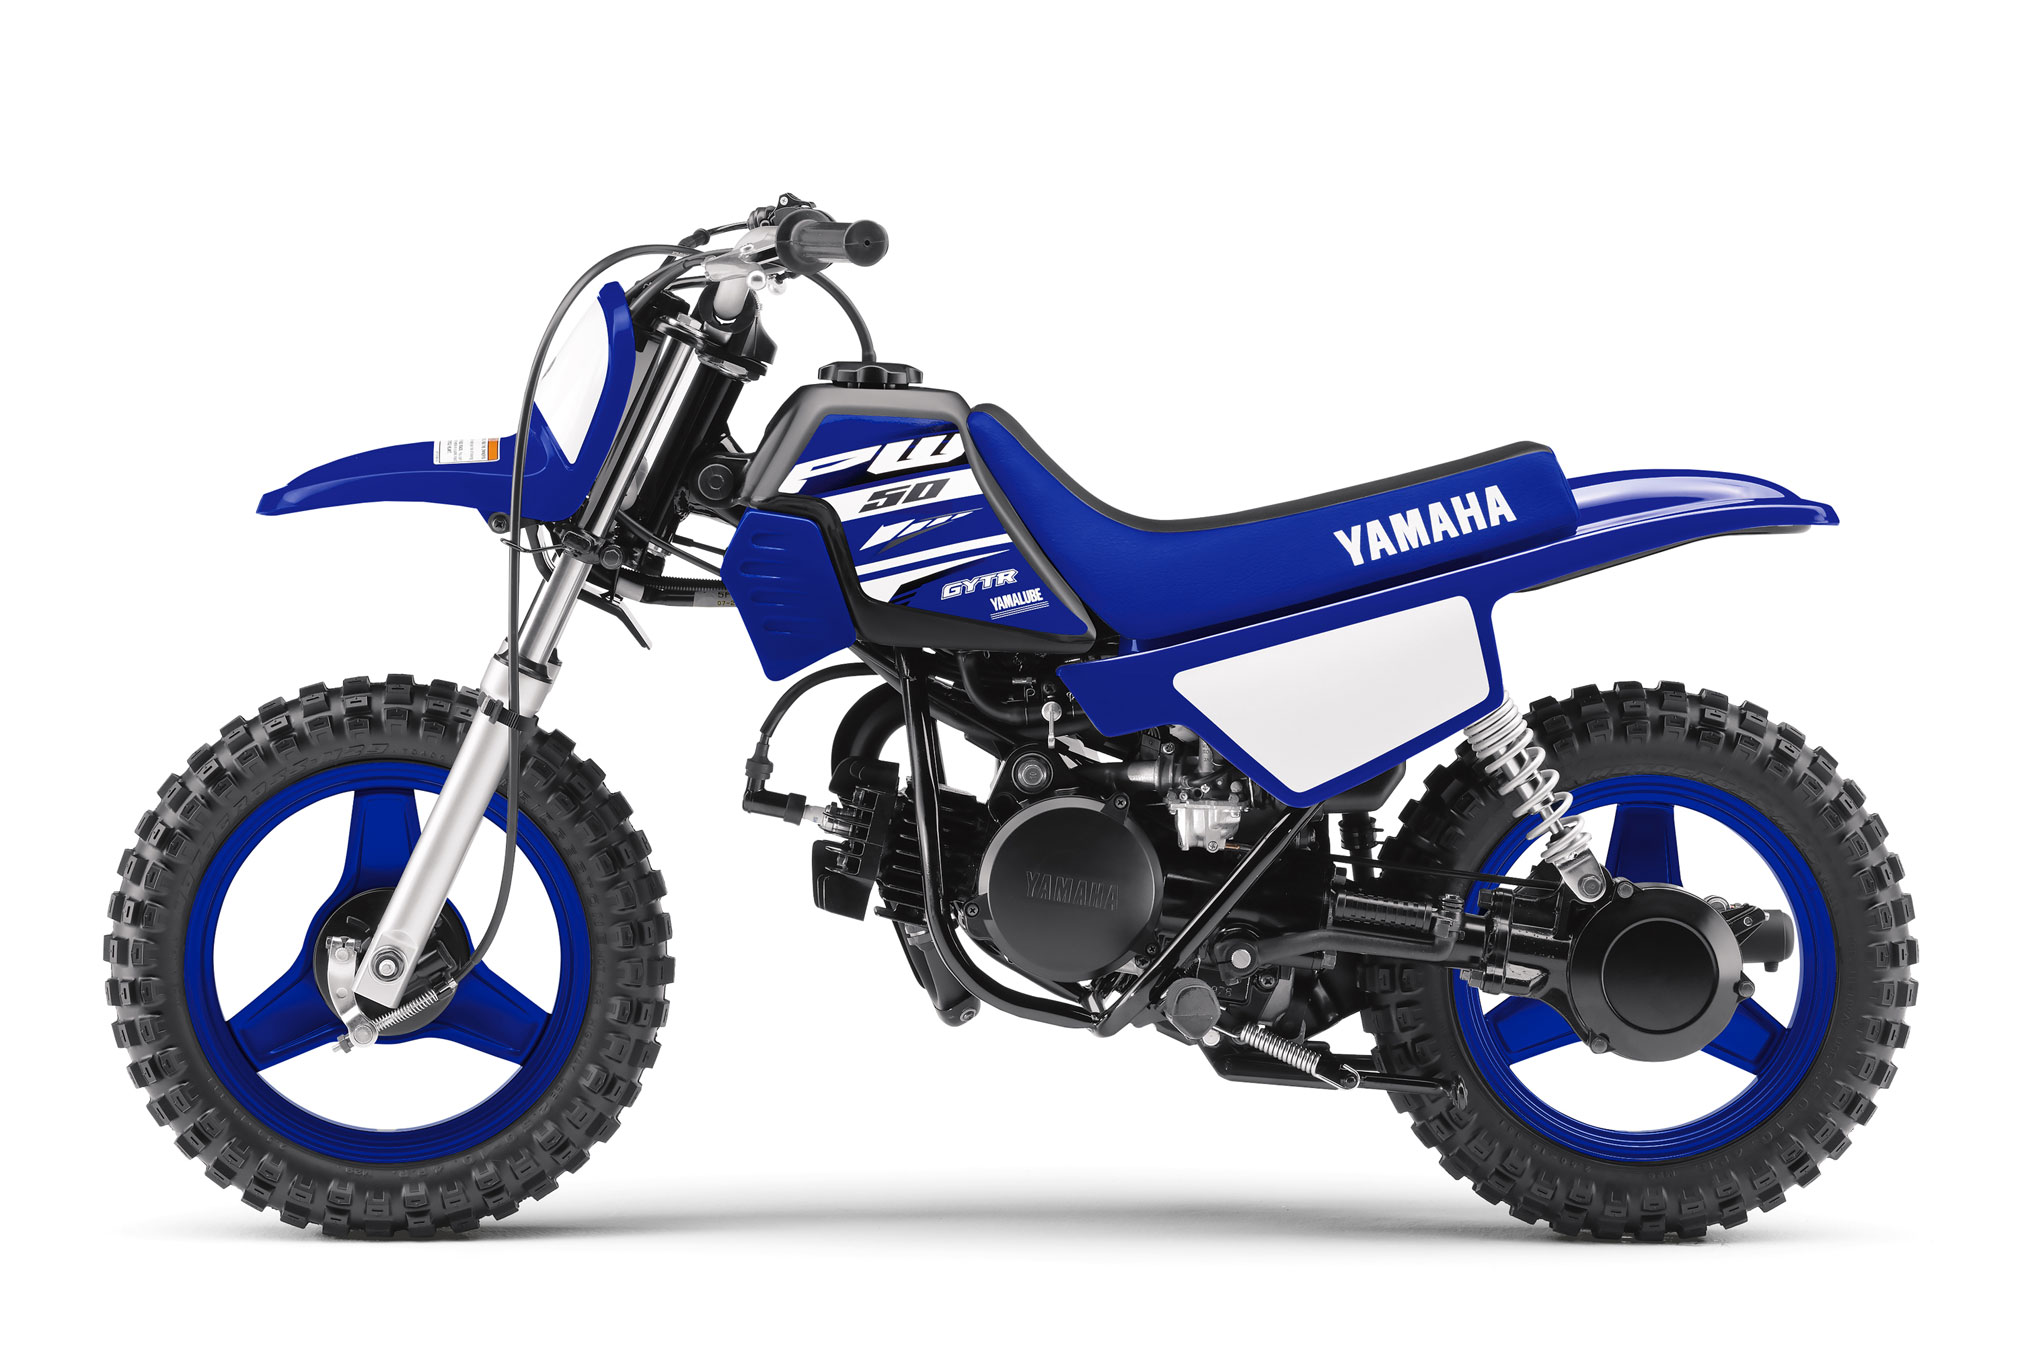 Yamaha Cc Dirt Bike With Training Wheels